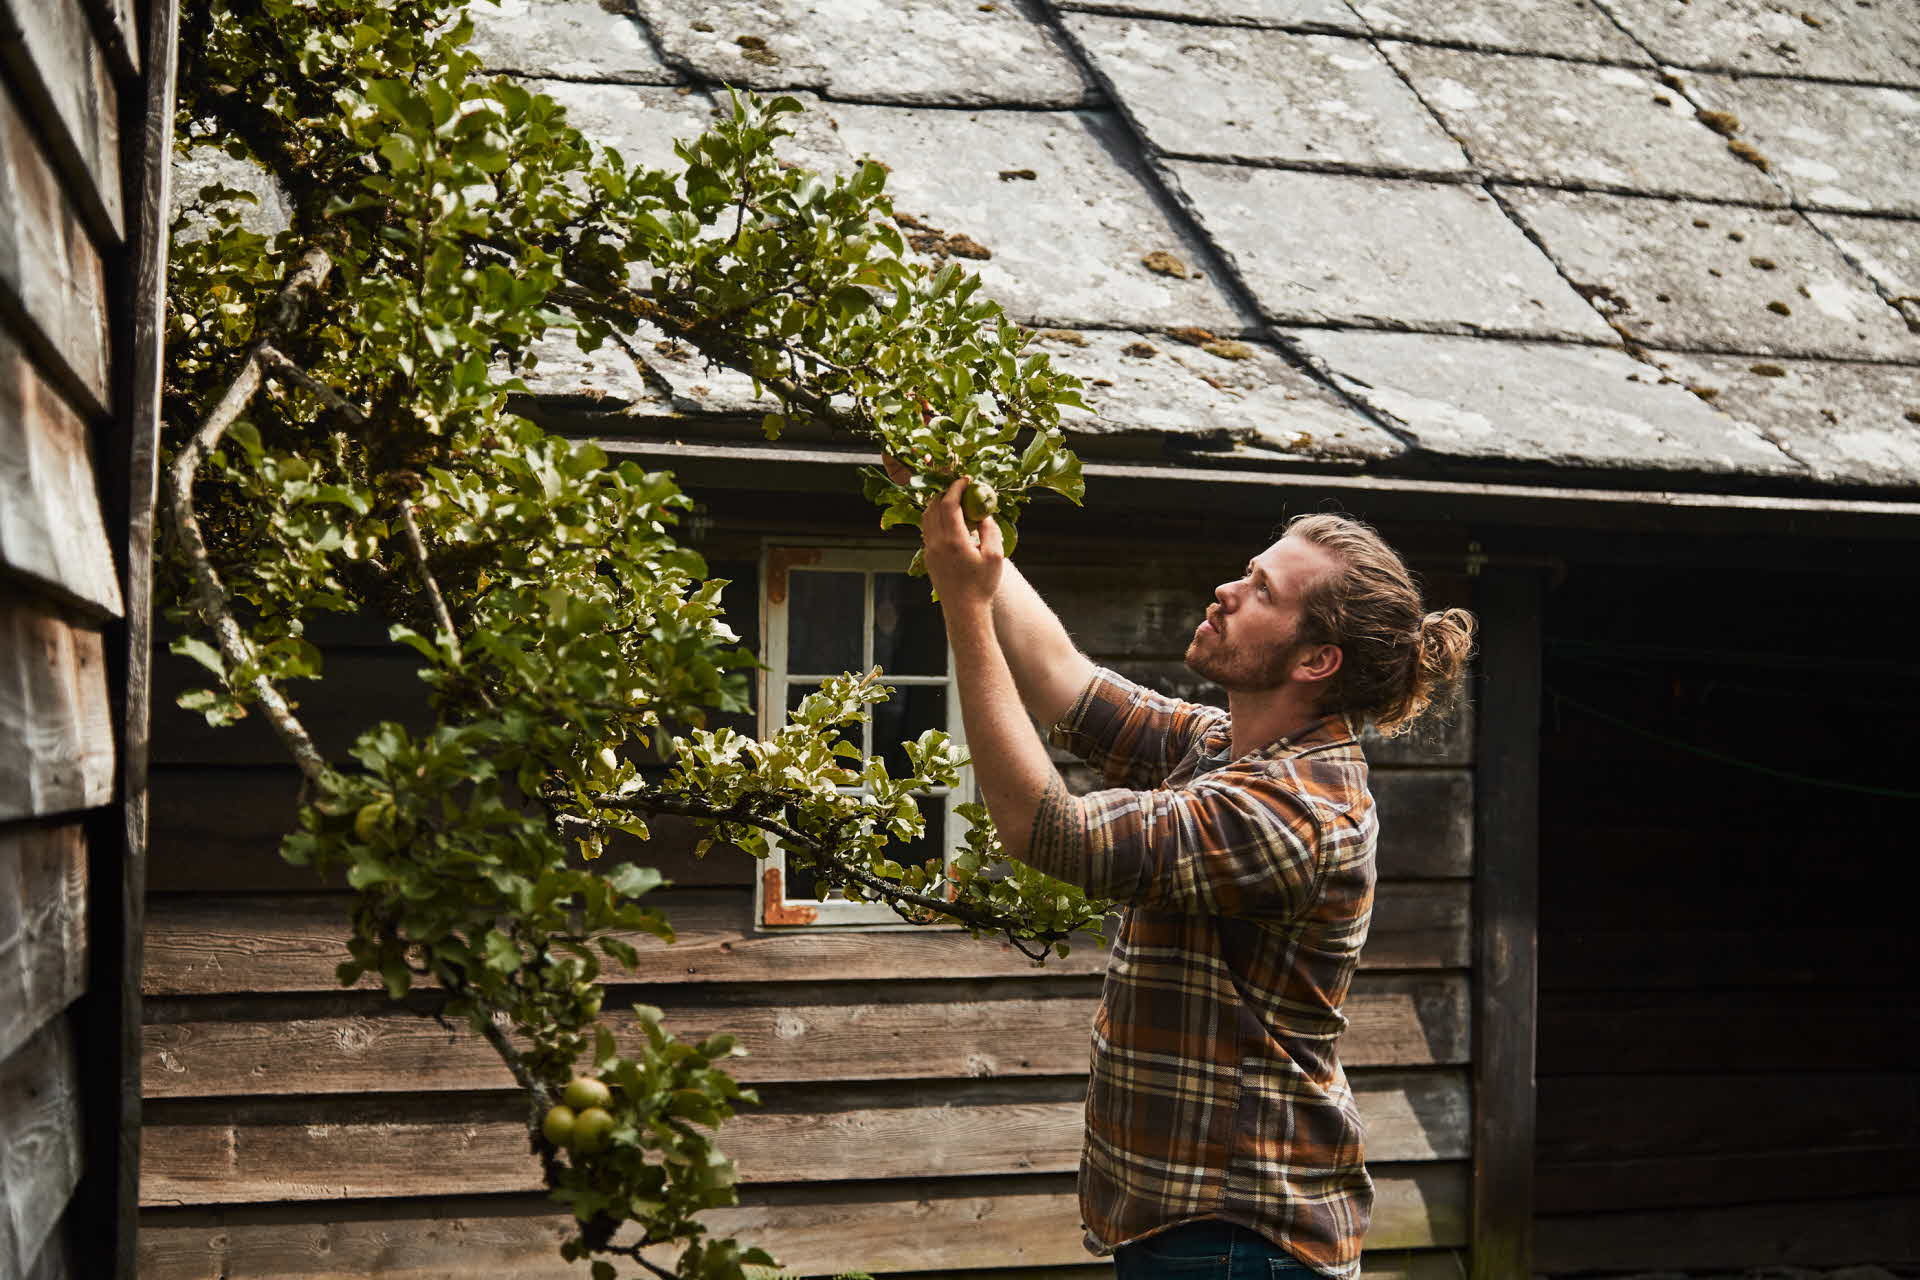 Apple farmer inspecting apples and trees beetween houses at Agatunet in Hardanger Norway